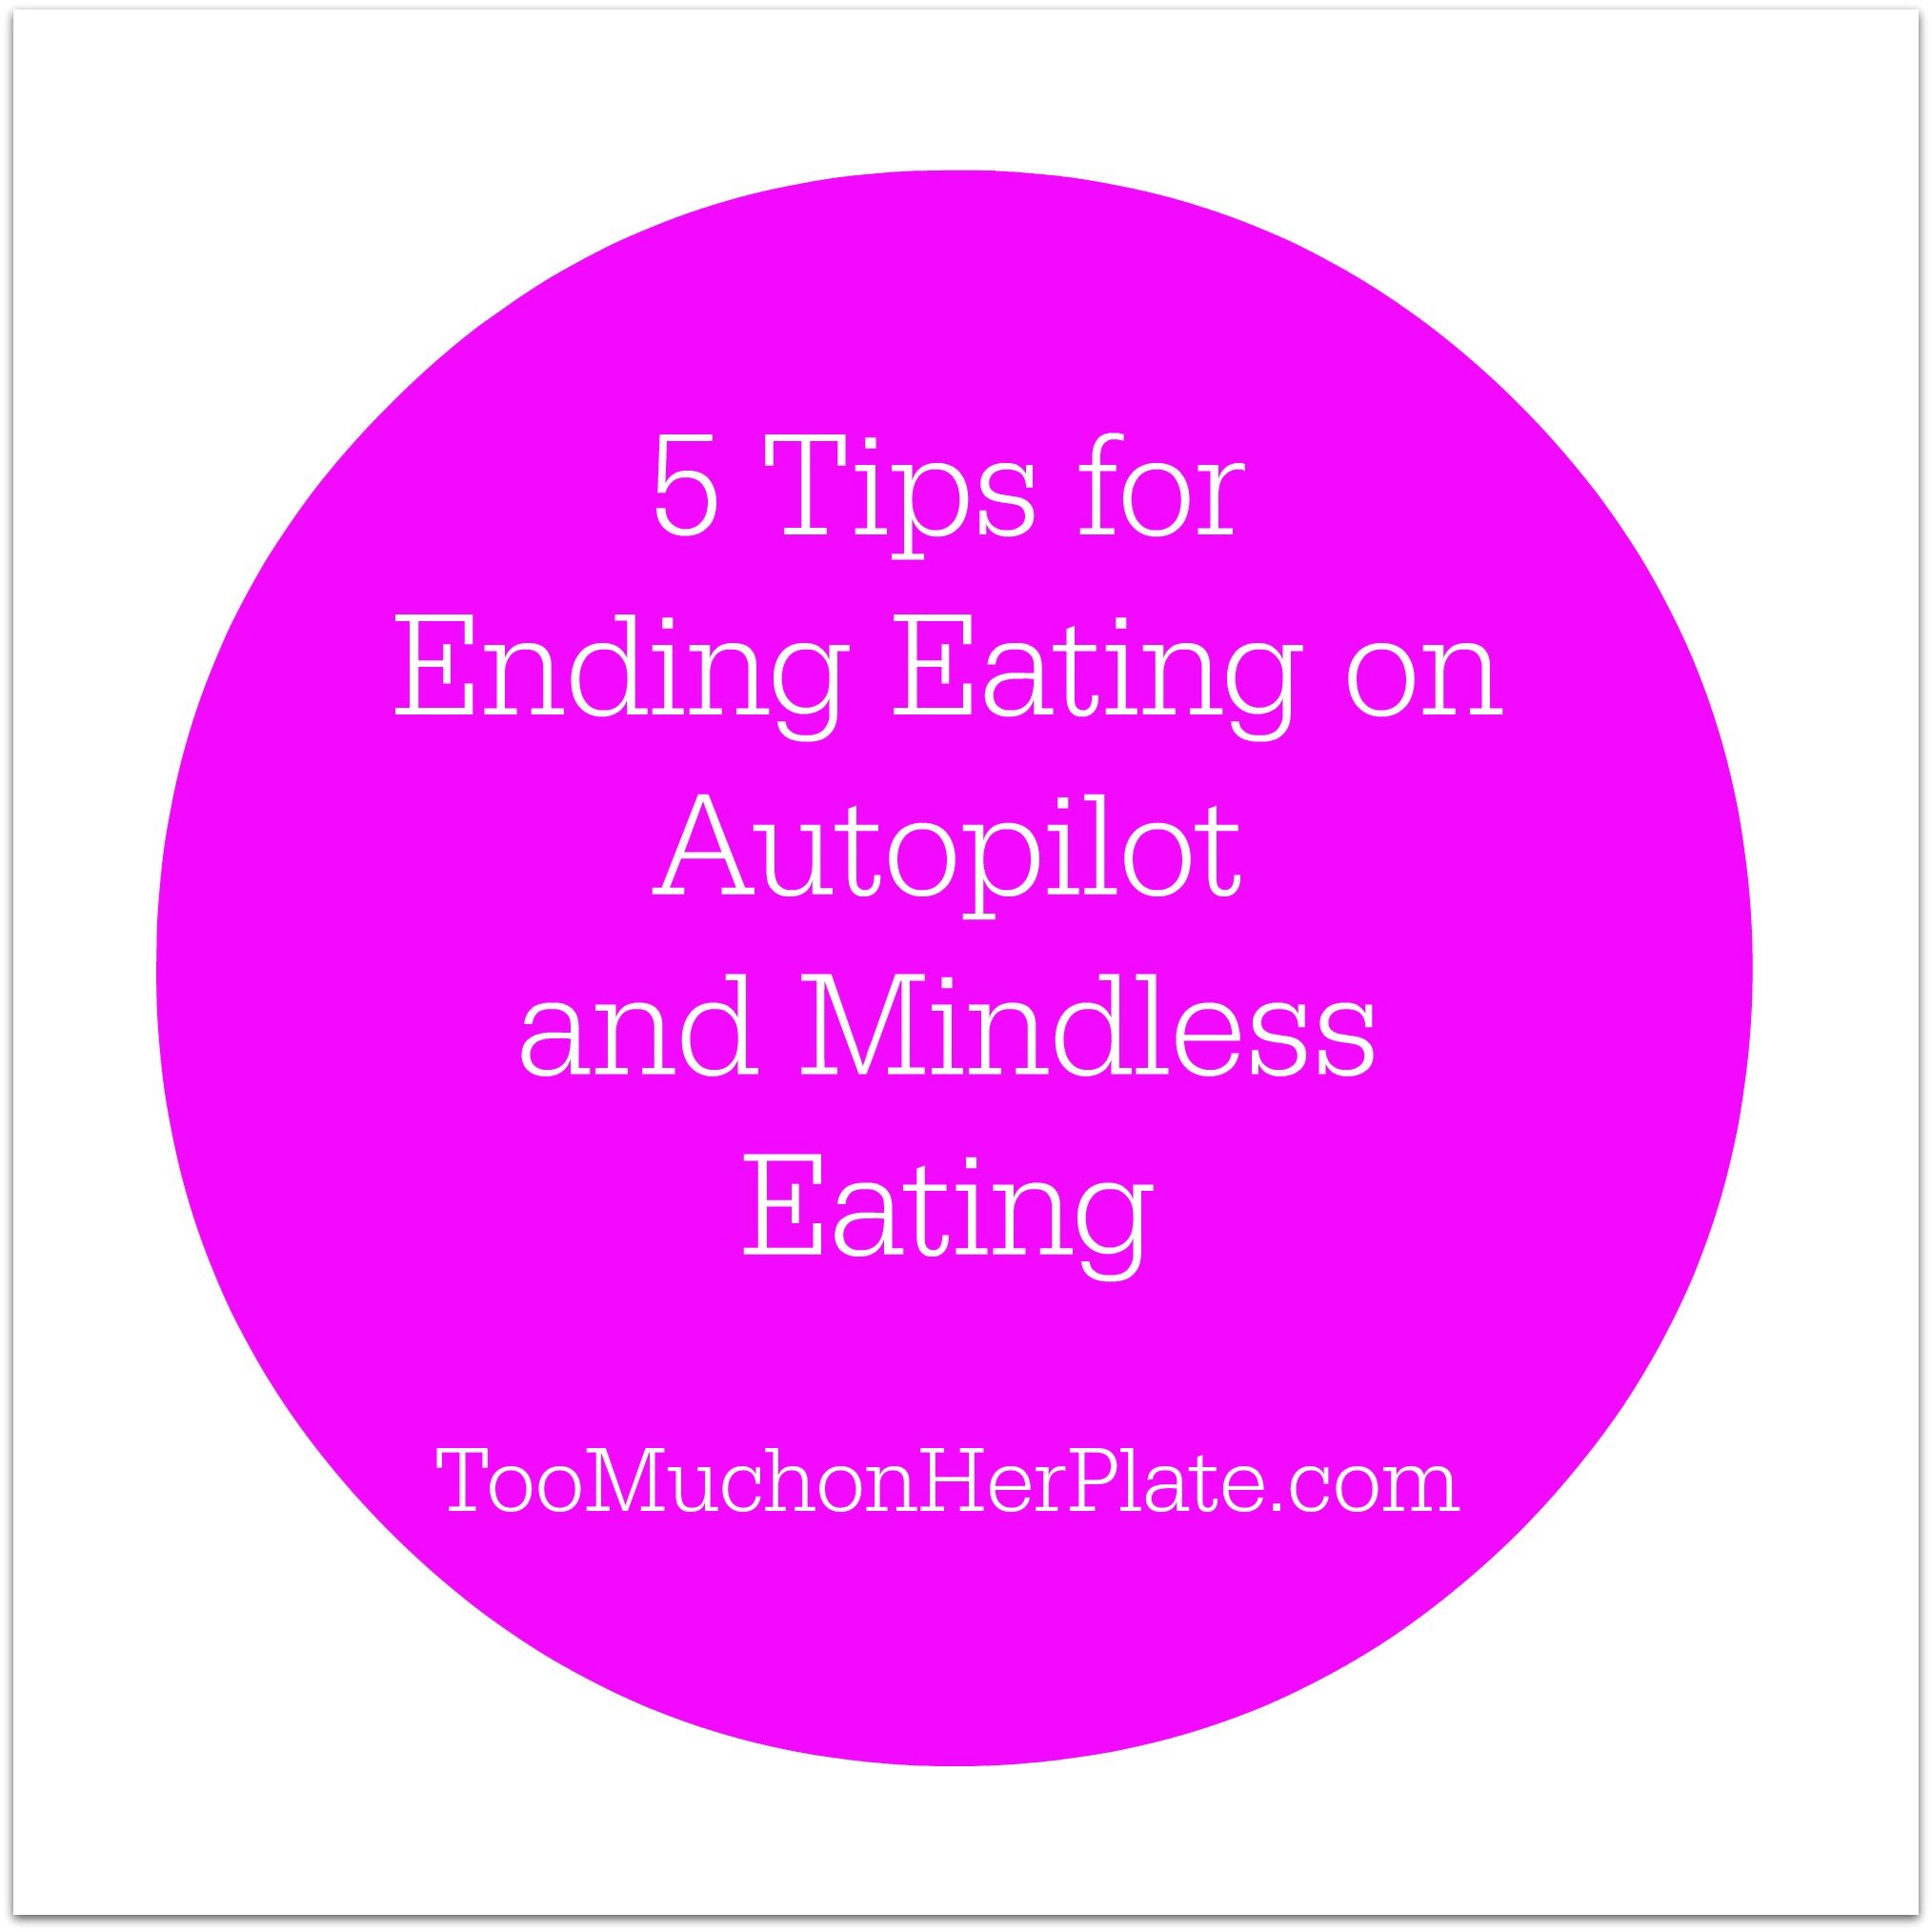 Are You An Emotional Eater We Share Practical Tips To: 5 Tips For Ending Eating On Autopilot And Mindless Eating